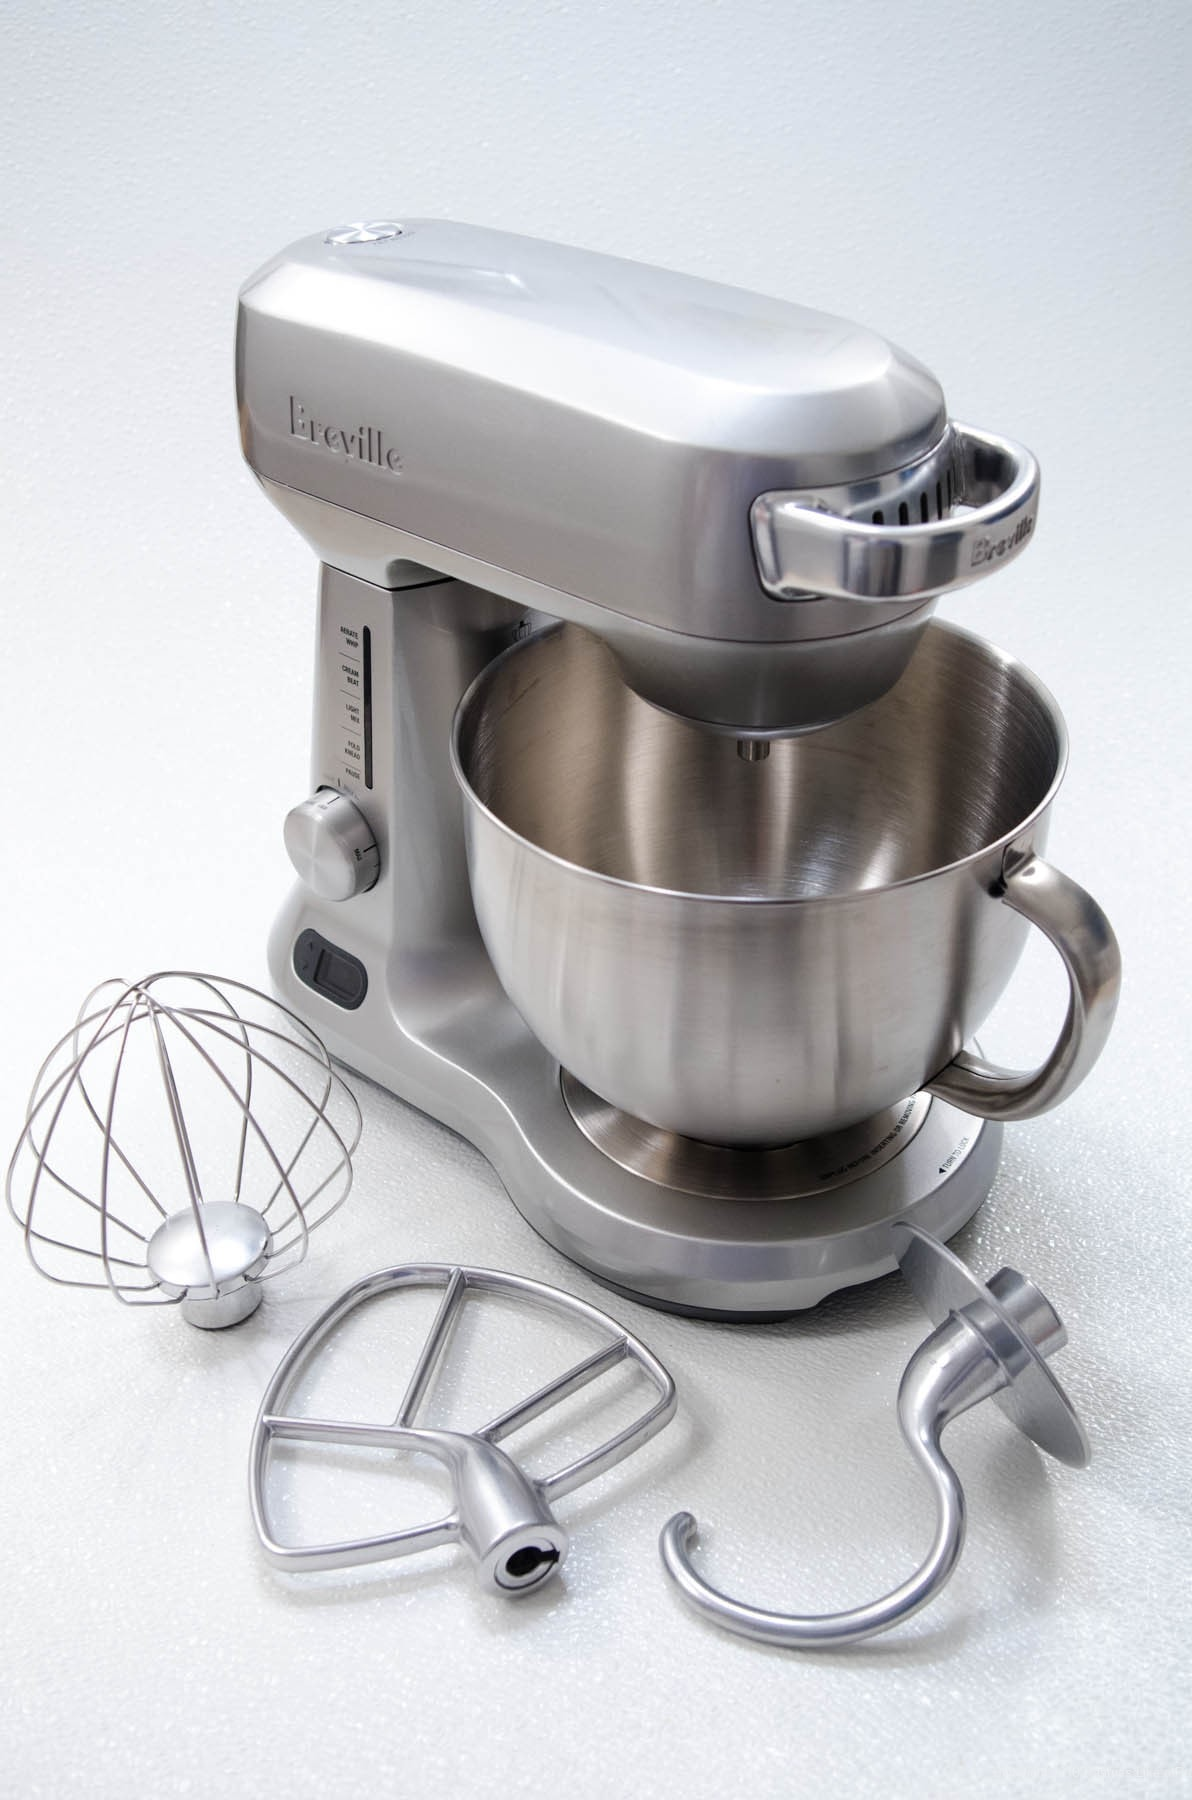 Awesome Breville Mixer Vs Kitchenaid Mixer Pastries Like A Pro Download Free Architecture Designs Scobabritishbridgeorg